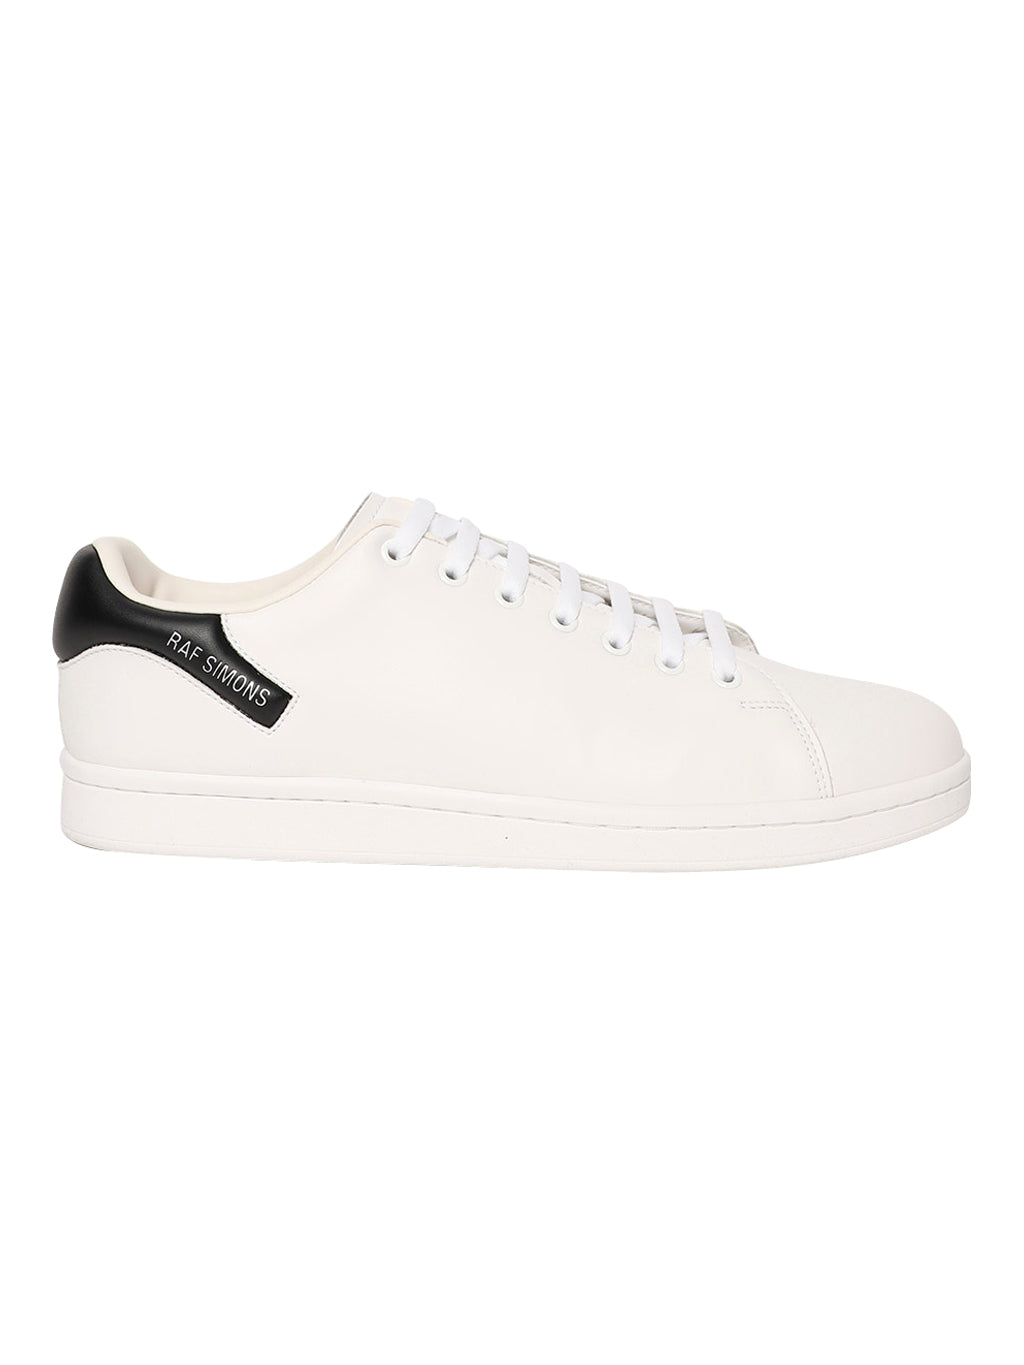 White & Black Orion Low Top Sneakers